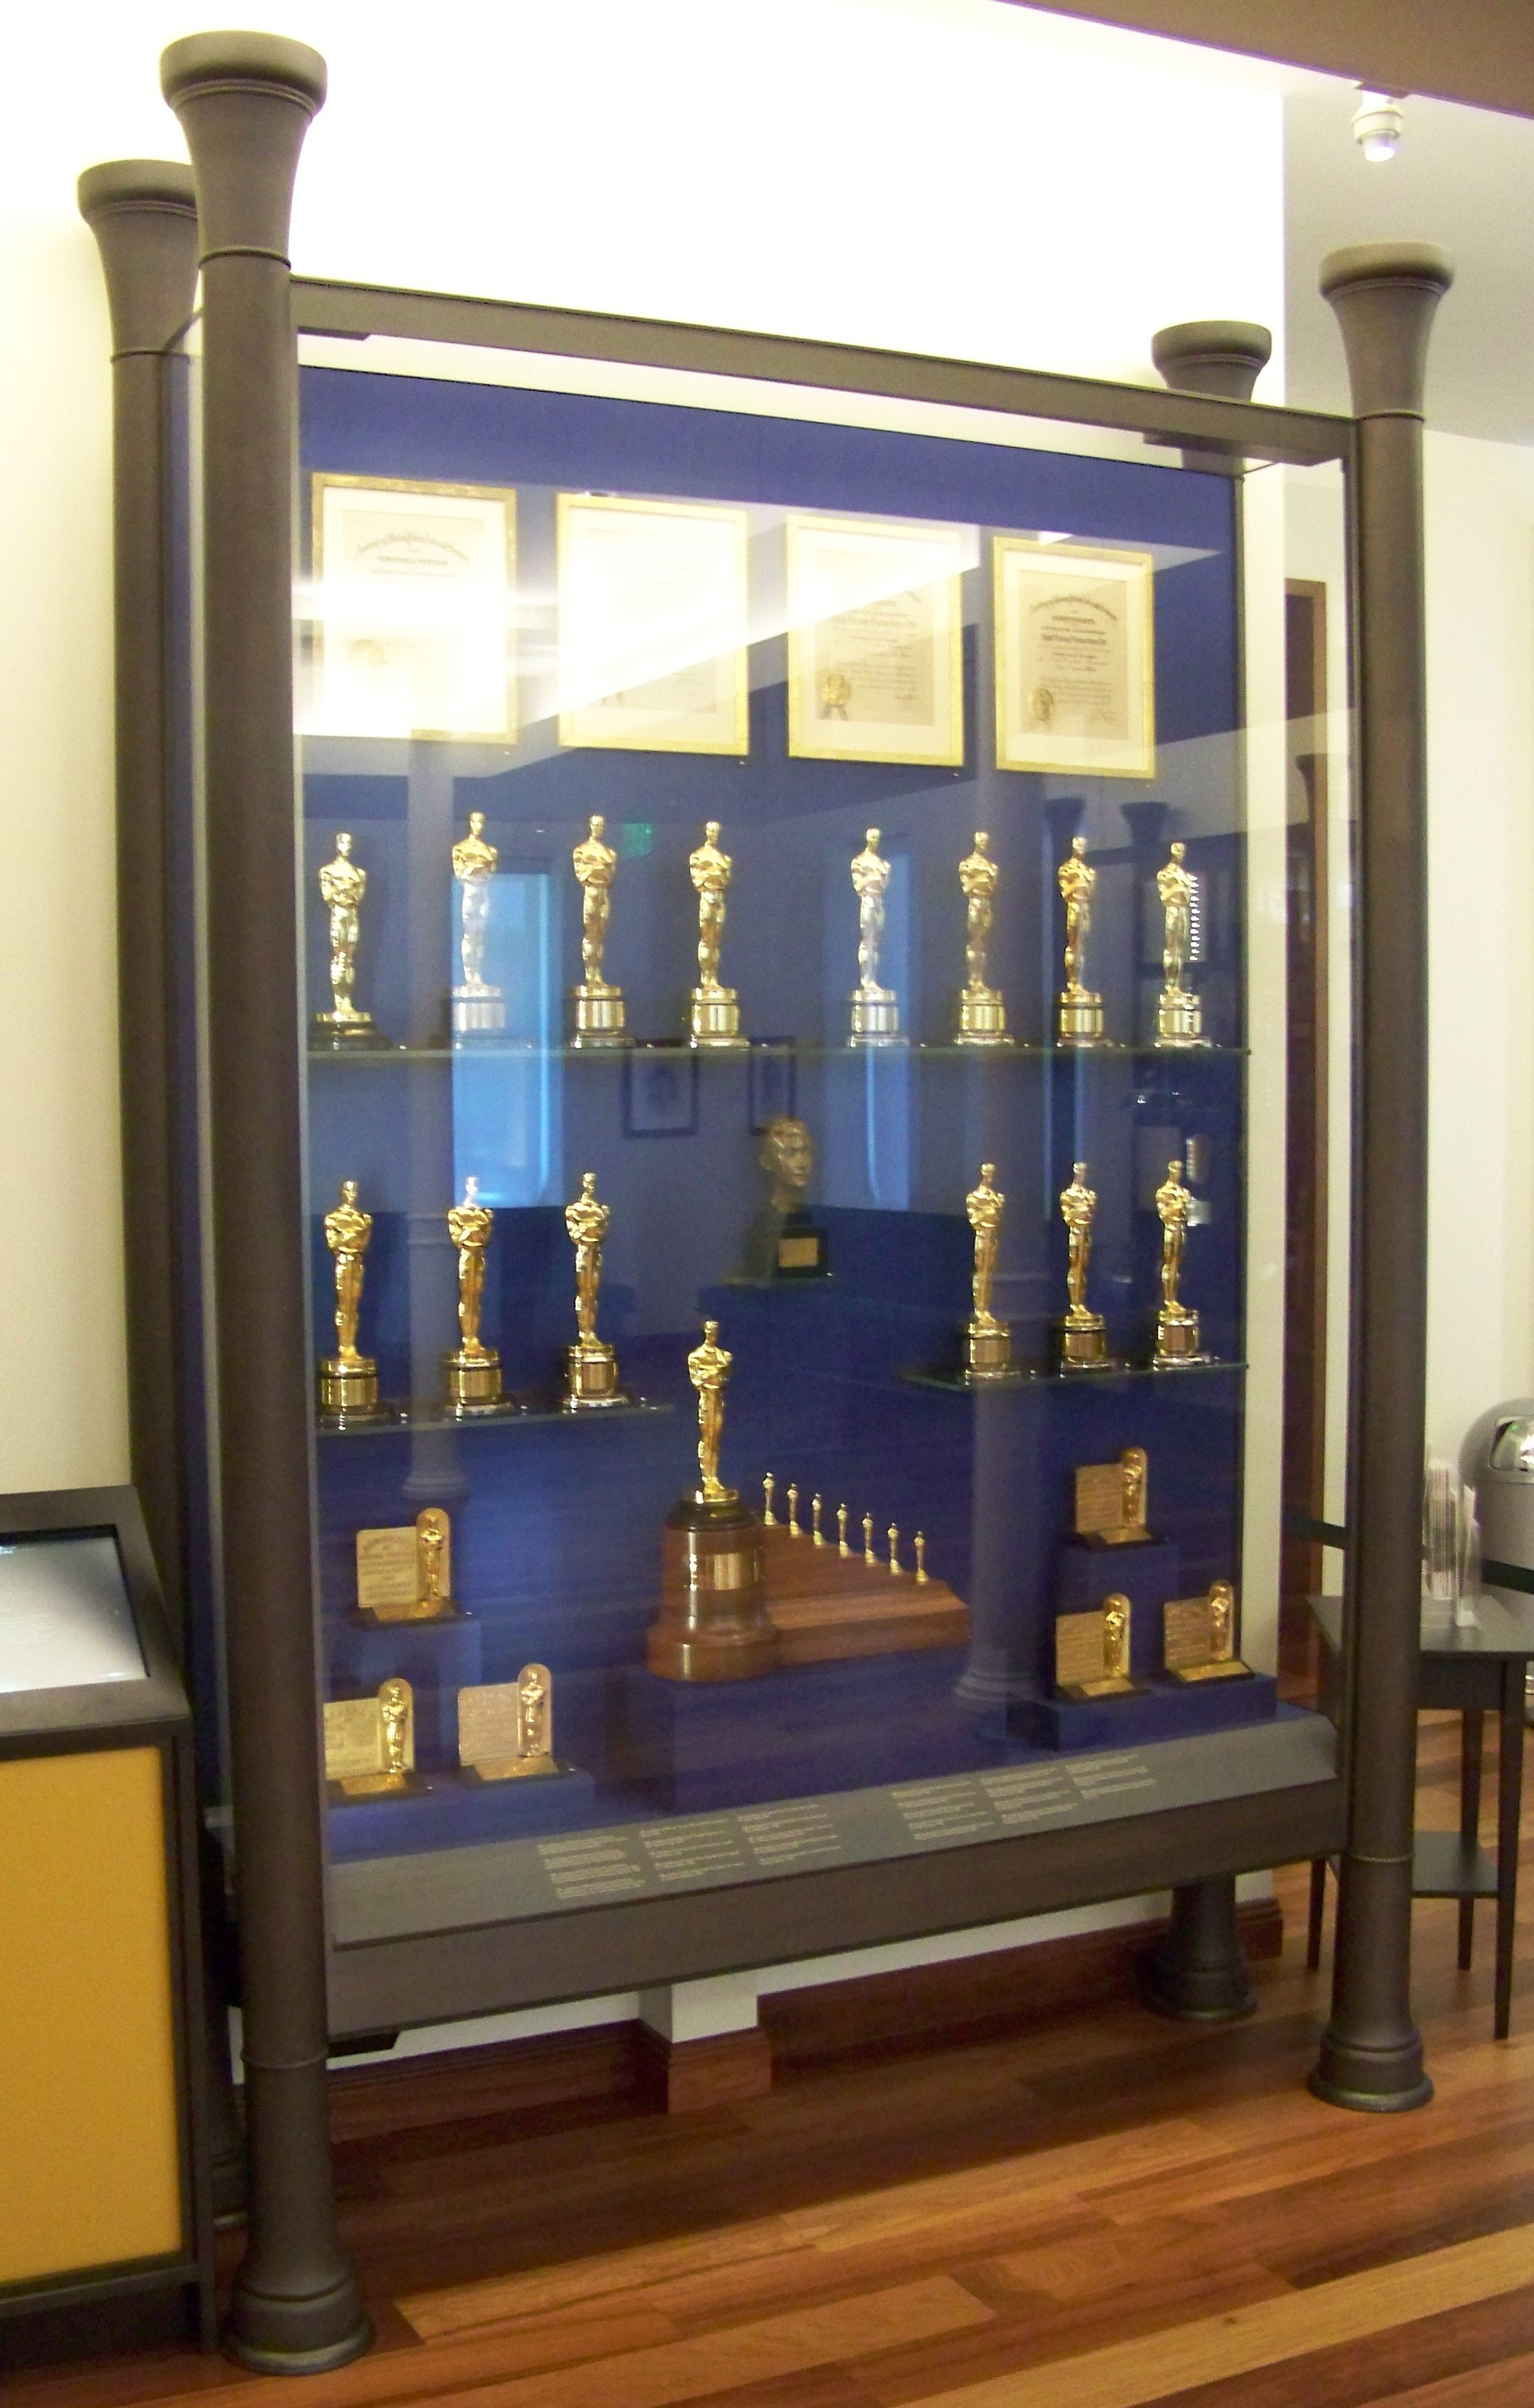 A Large Cabinet Containing Several Golden Statuettes And Few Certificates